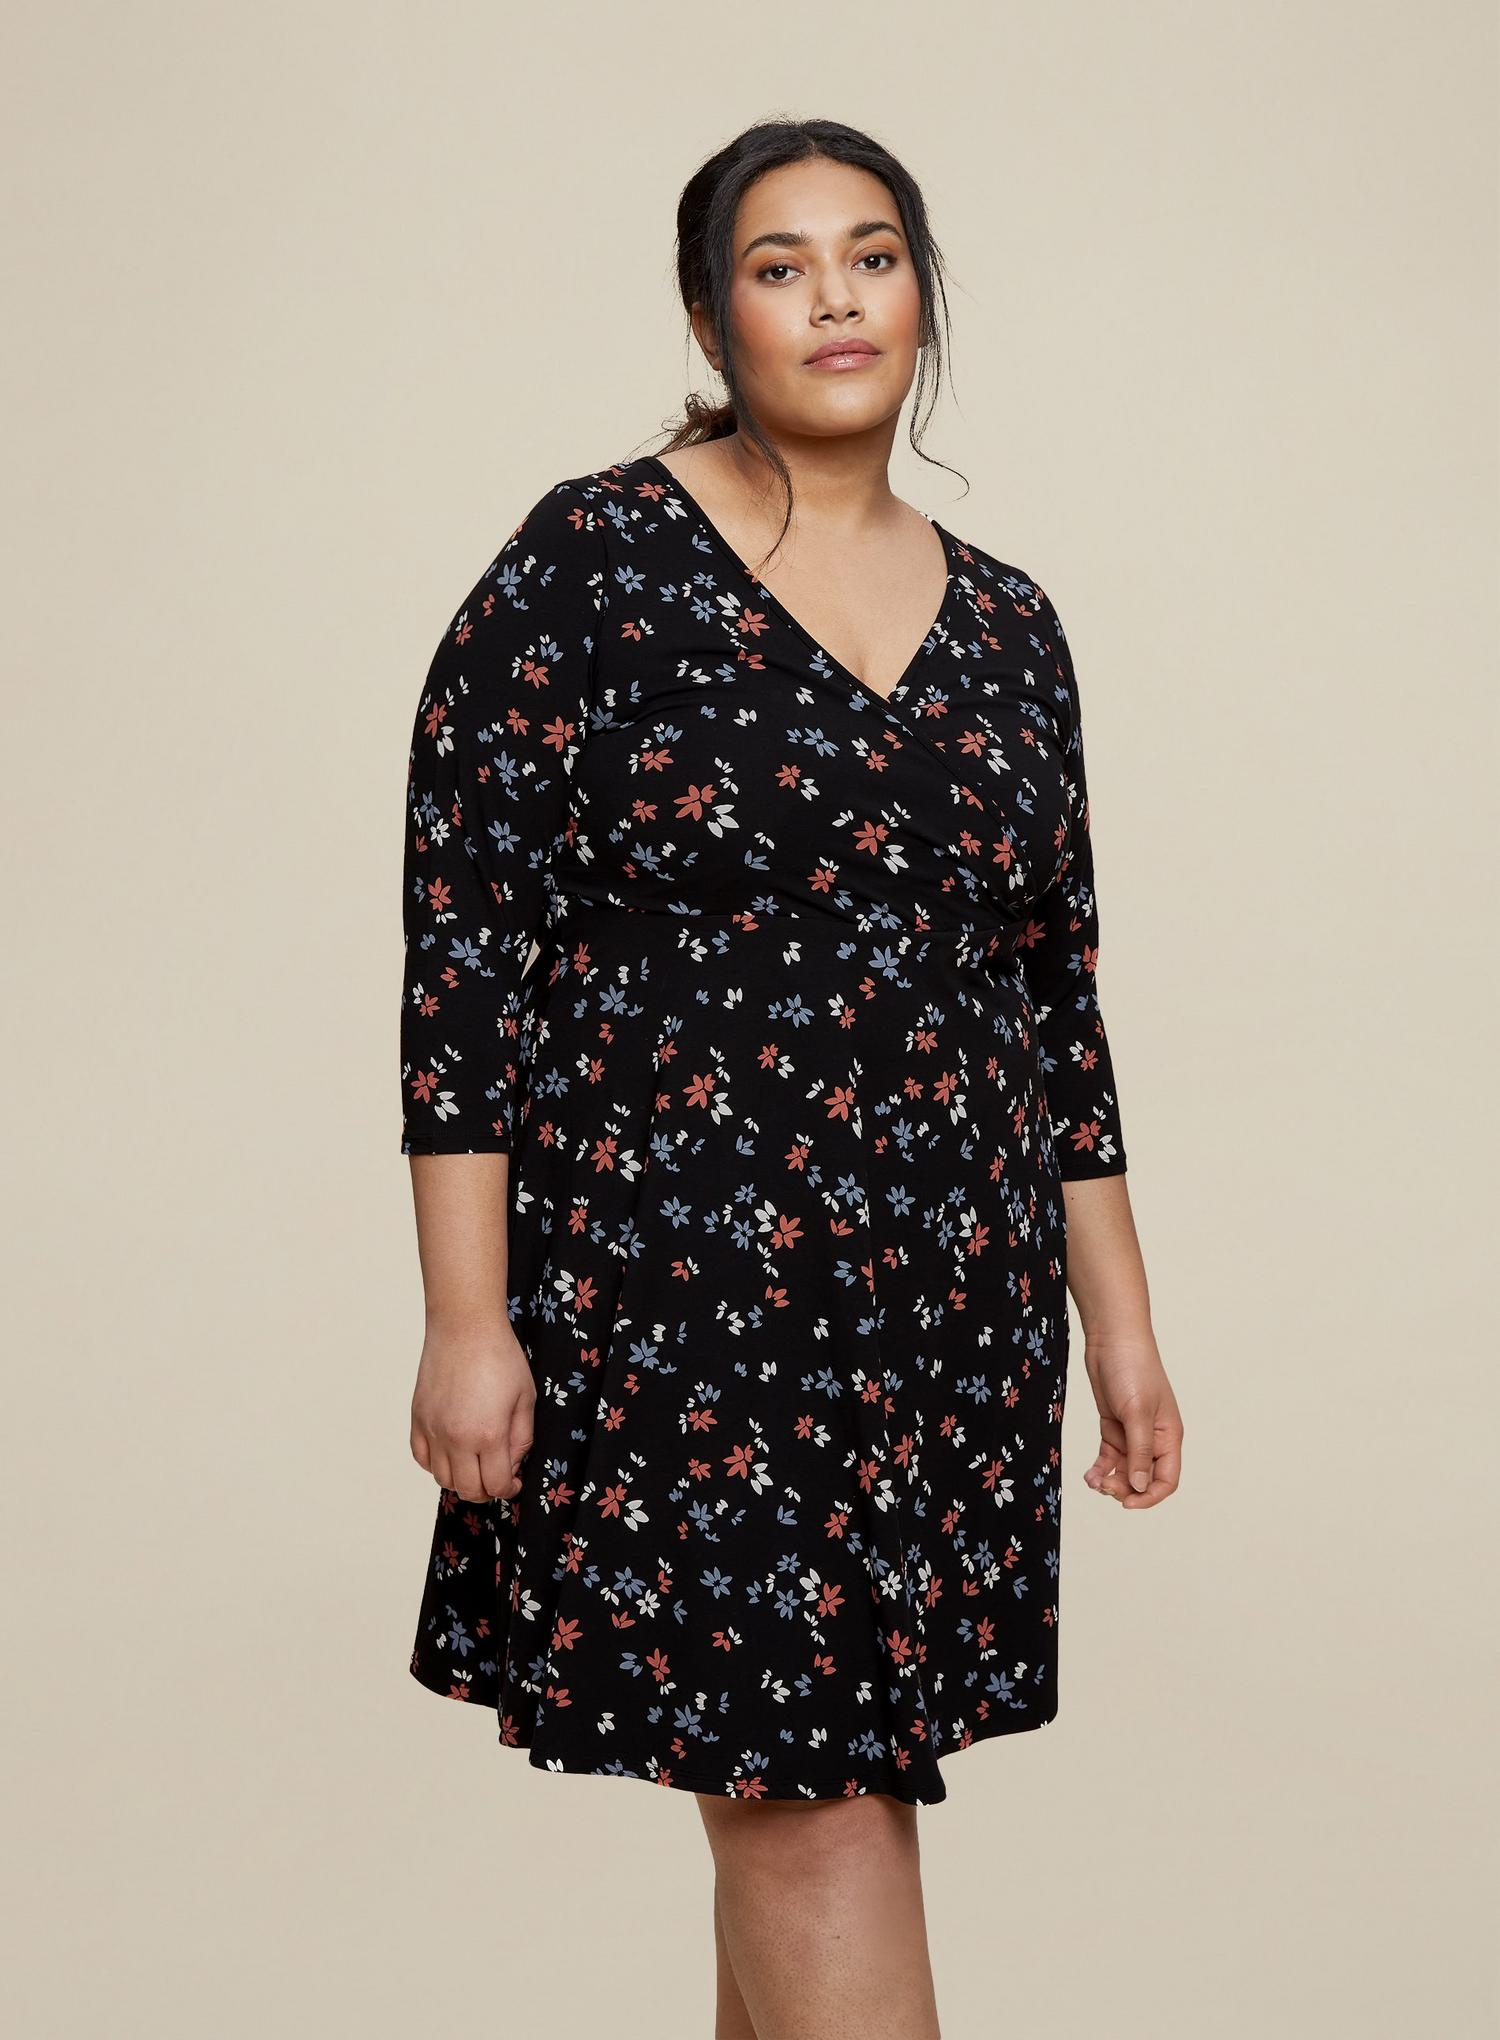 105 Curve Black Ditsy Print Wrap Dress image number 1